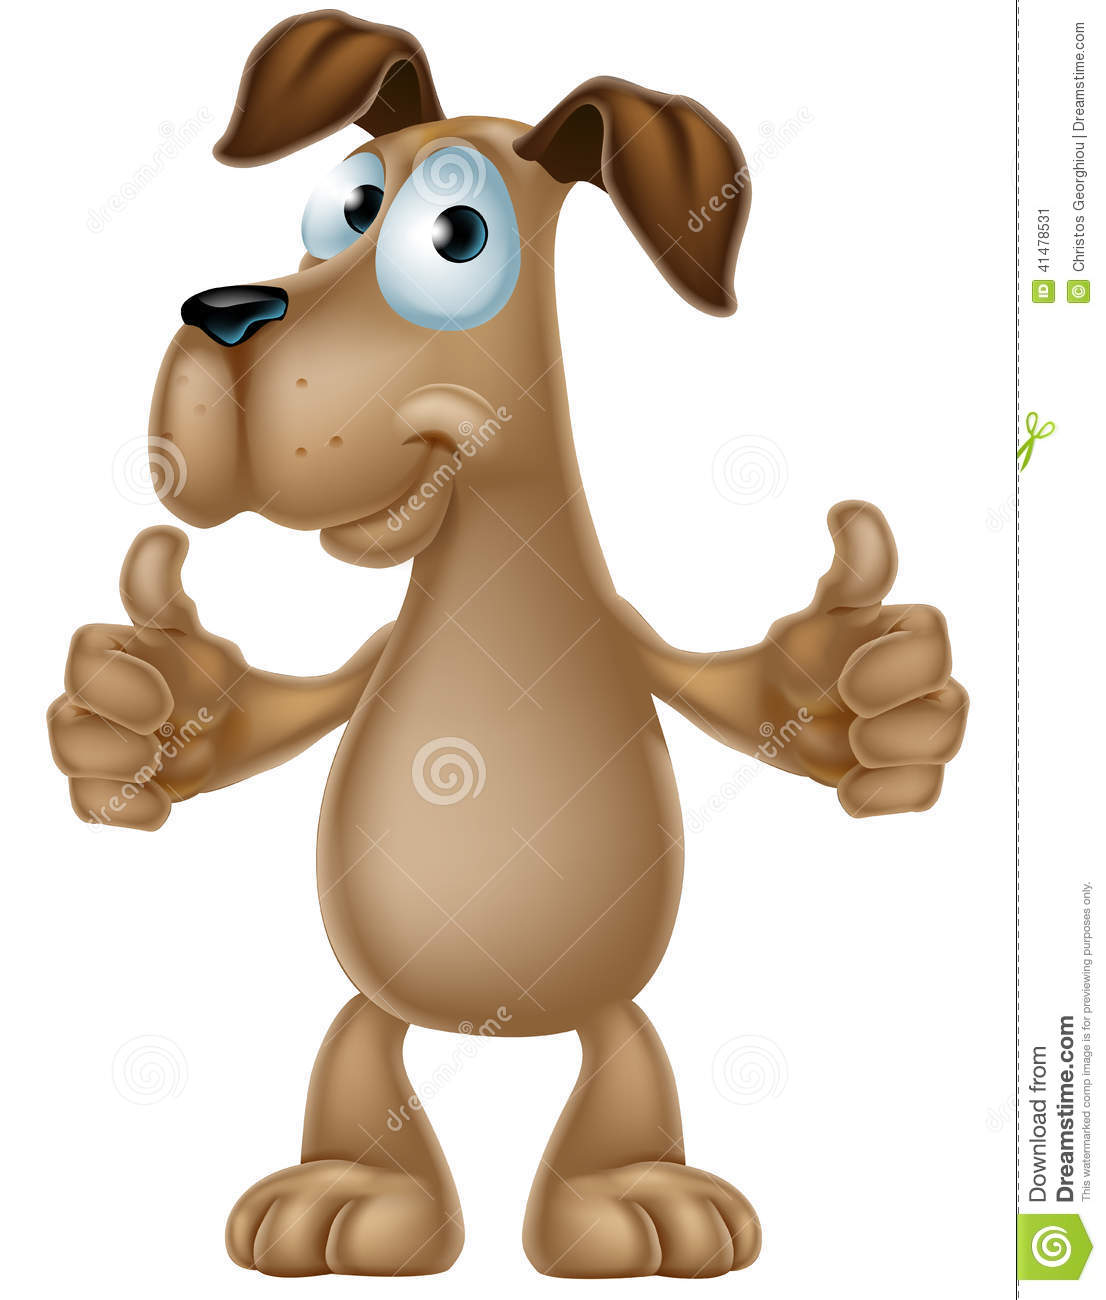 Clipart dog thumbs up. Clipartfest cartoon giving